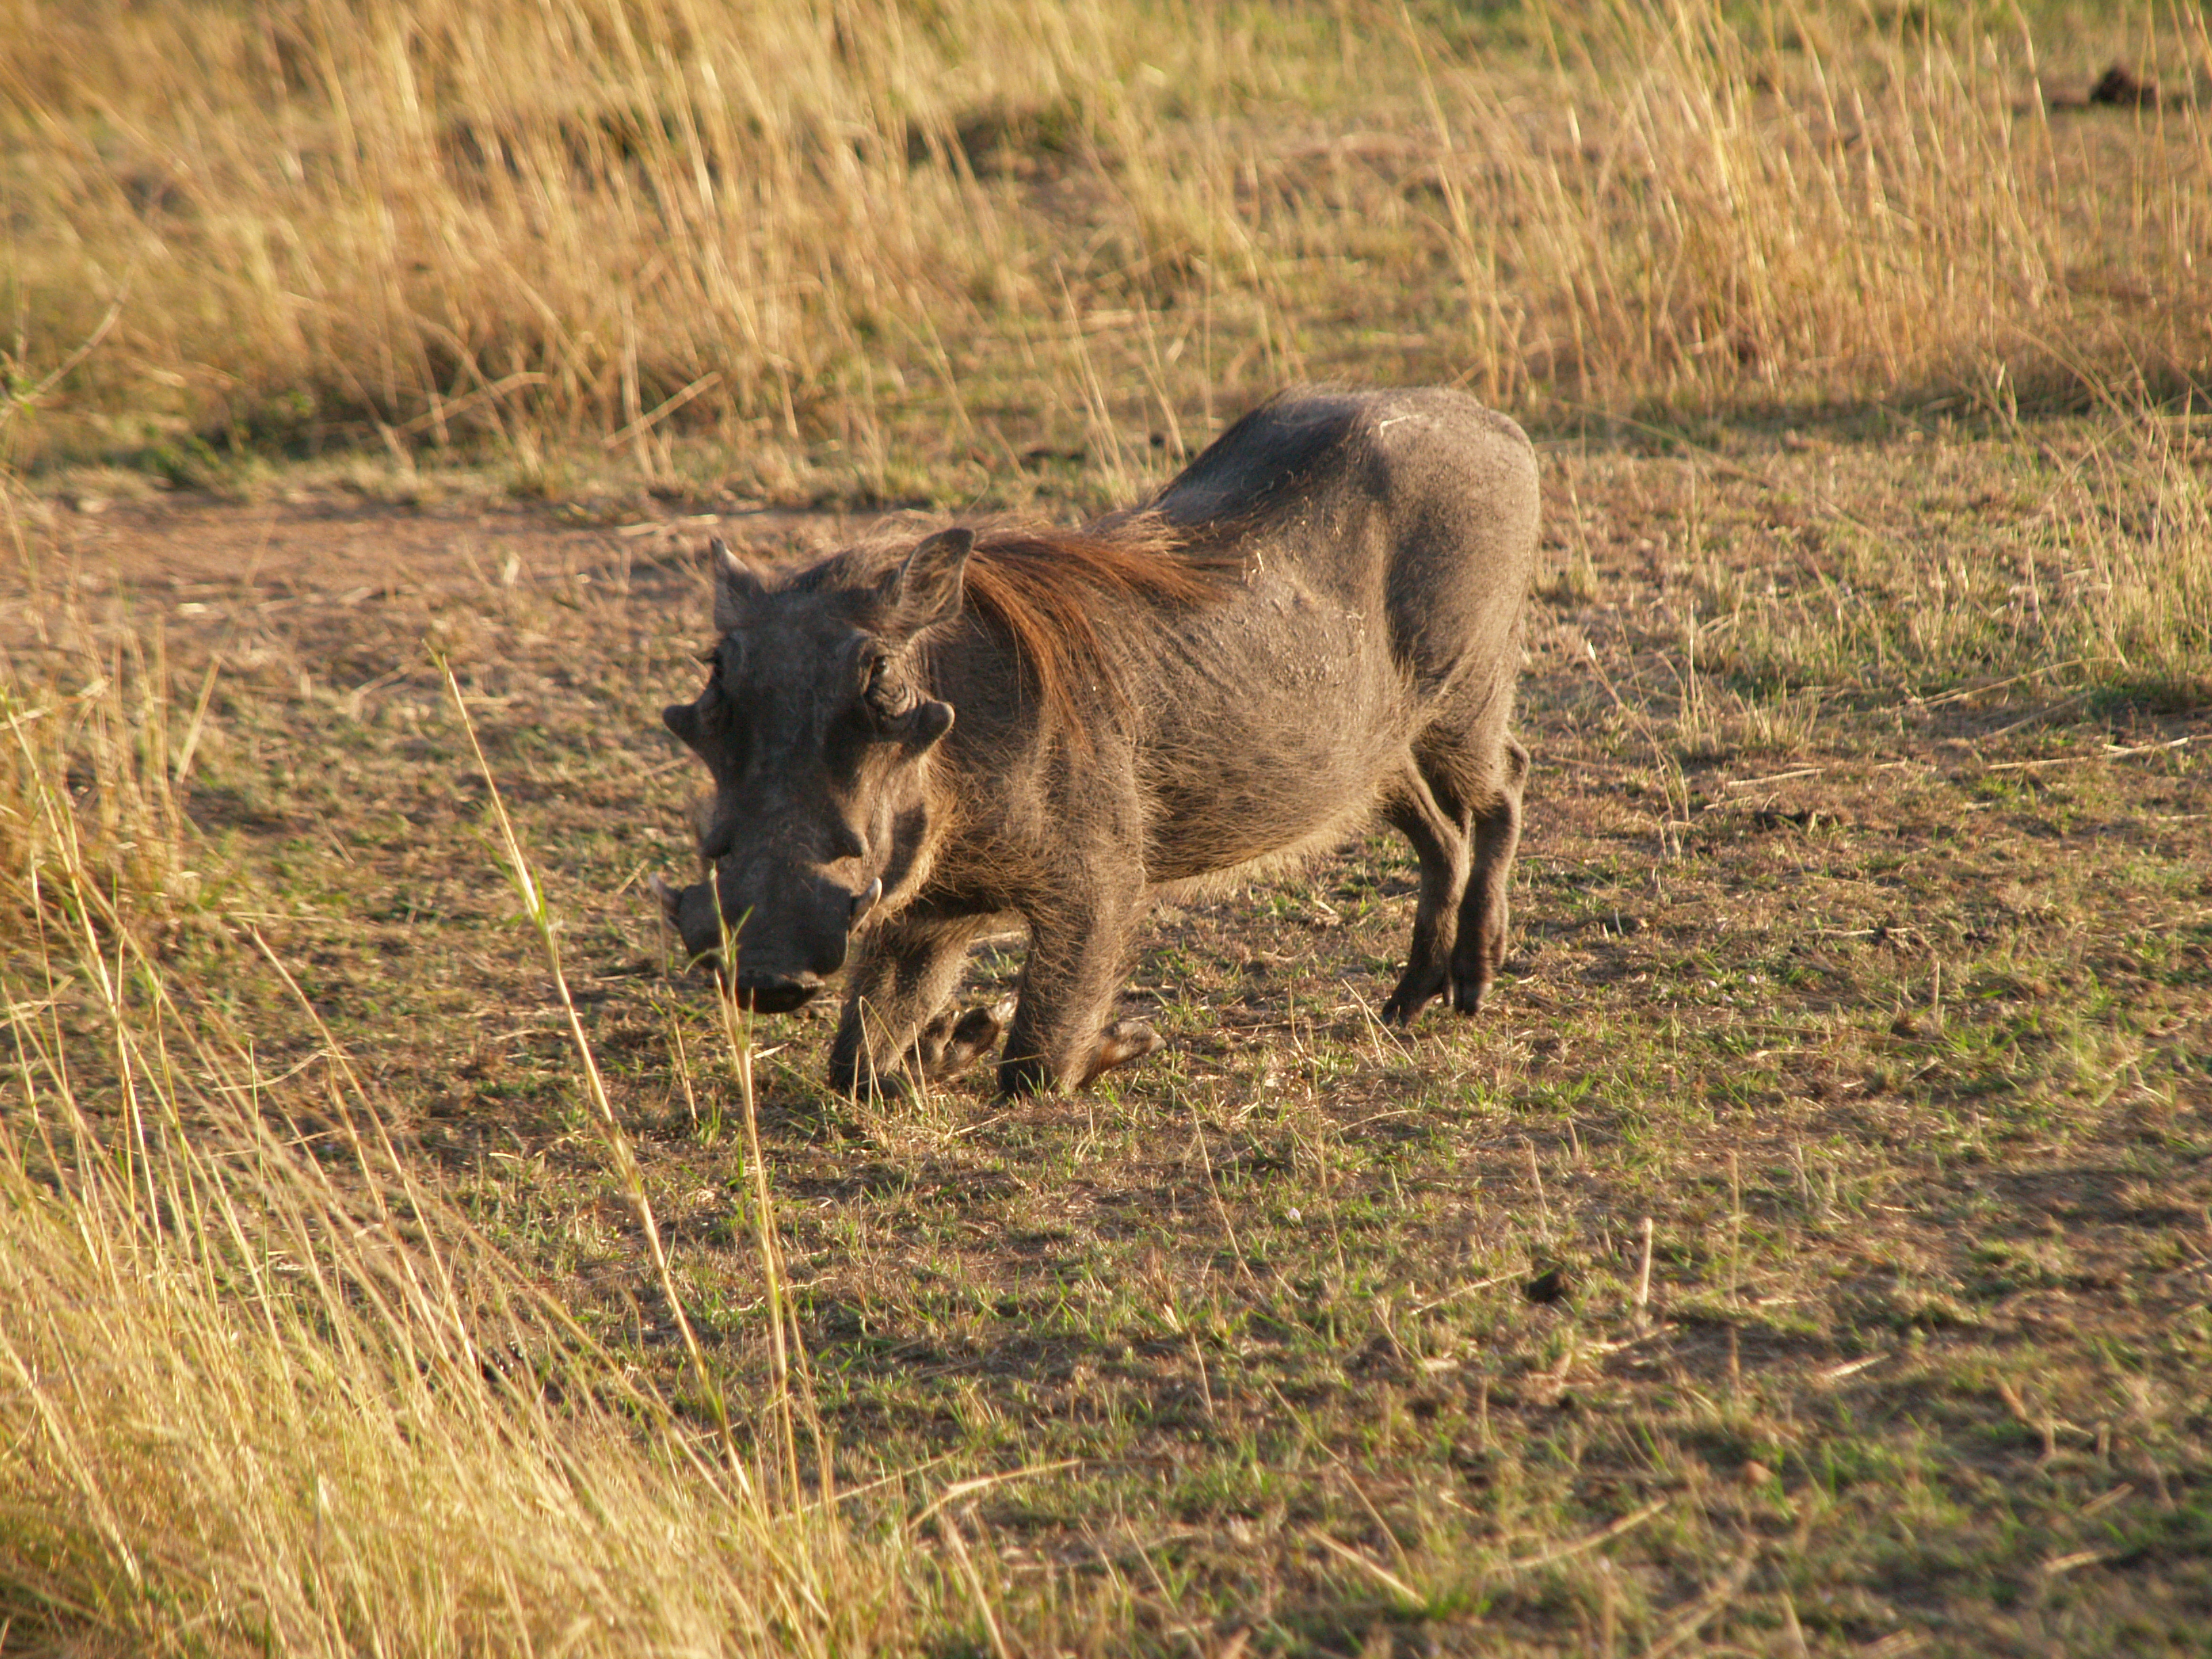 warthog needs to kneel when it eats, because of its short neck